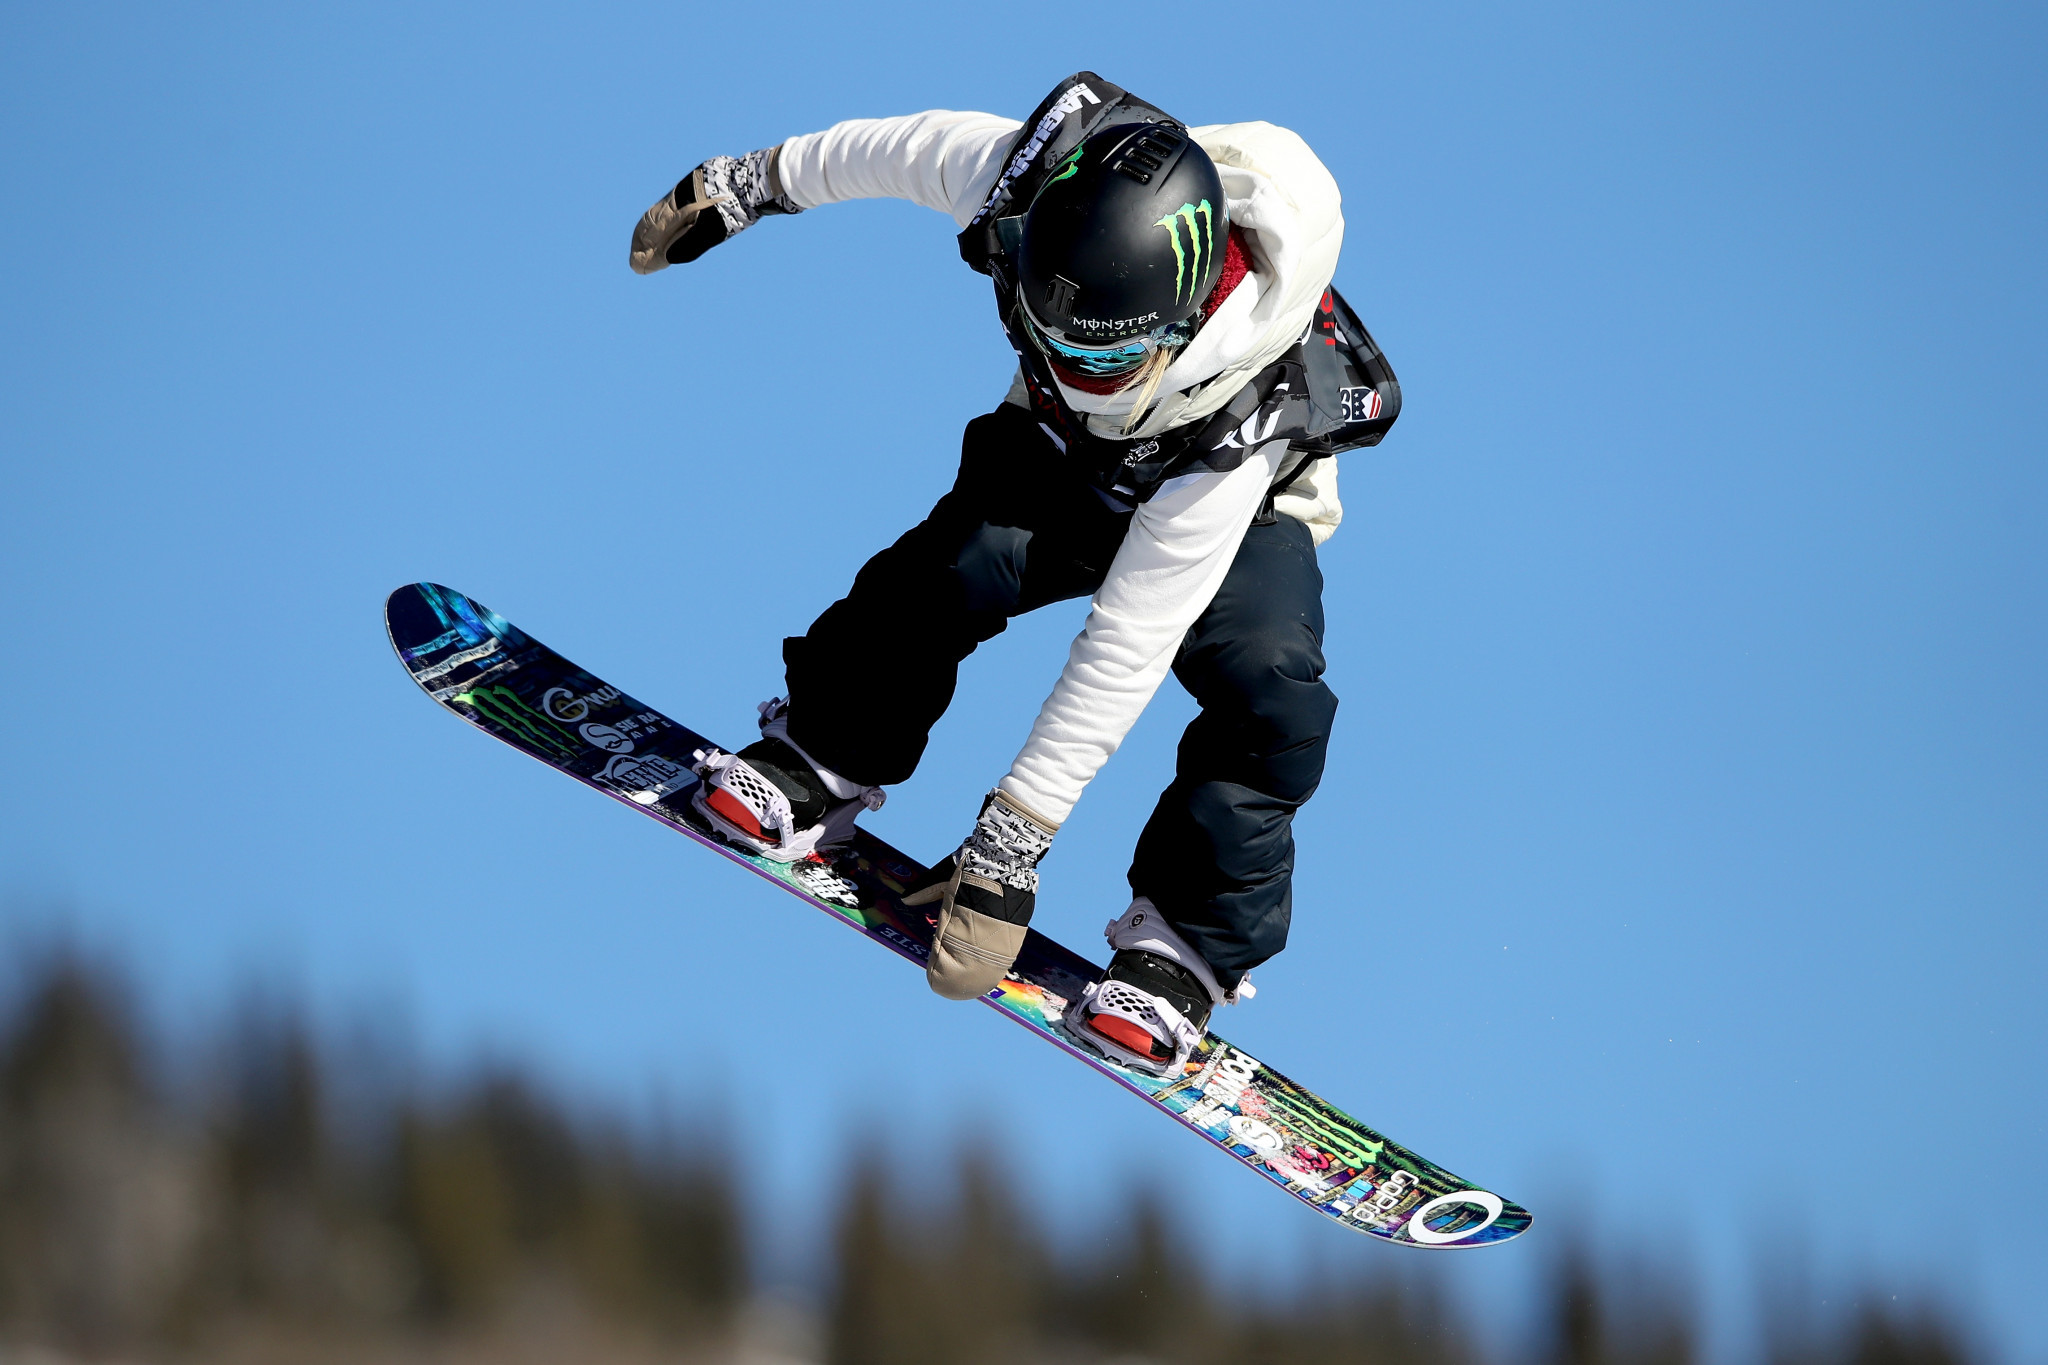 Anderson among 13 athletes named to Canada's Olympic snowboard team